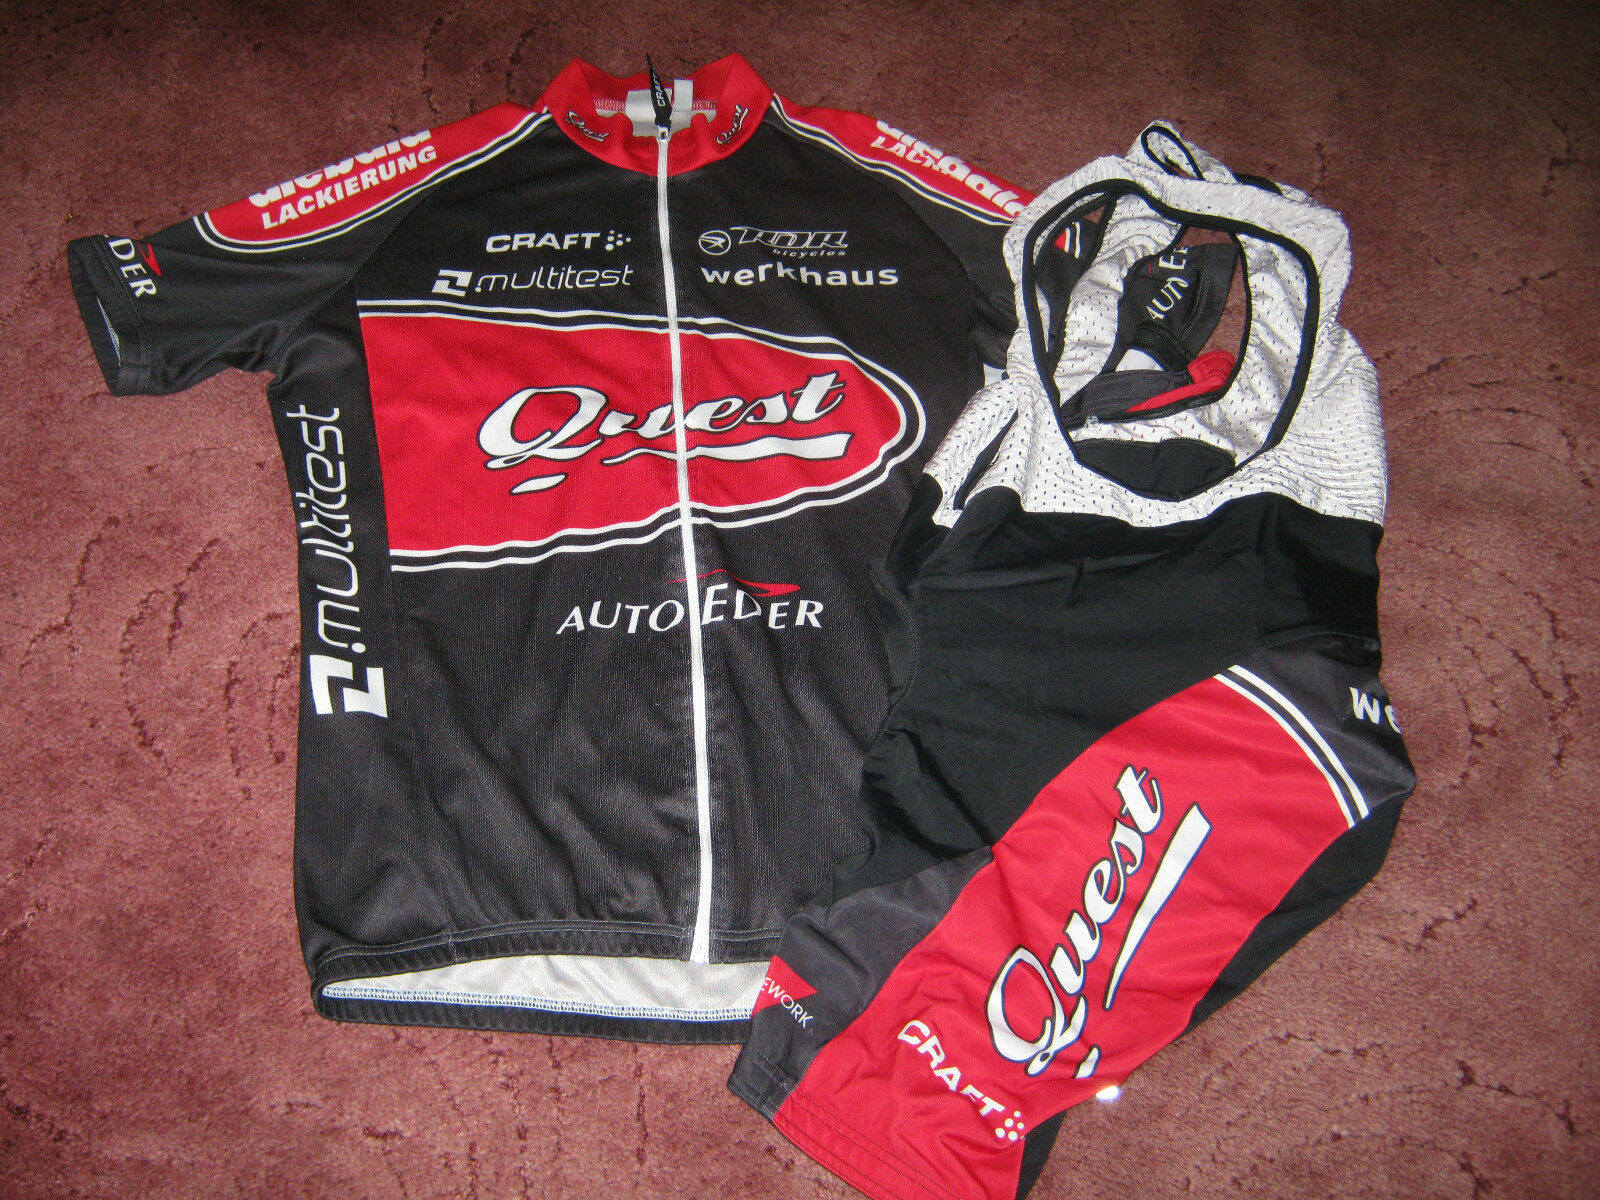 QUEST RALPH DENK RACING STORE GERMANY CRAFT CYCLING JERSEY & BIB SHORTS [L]